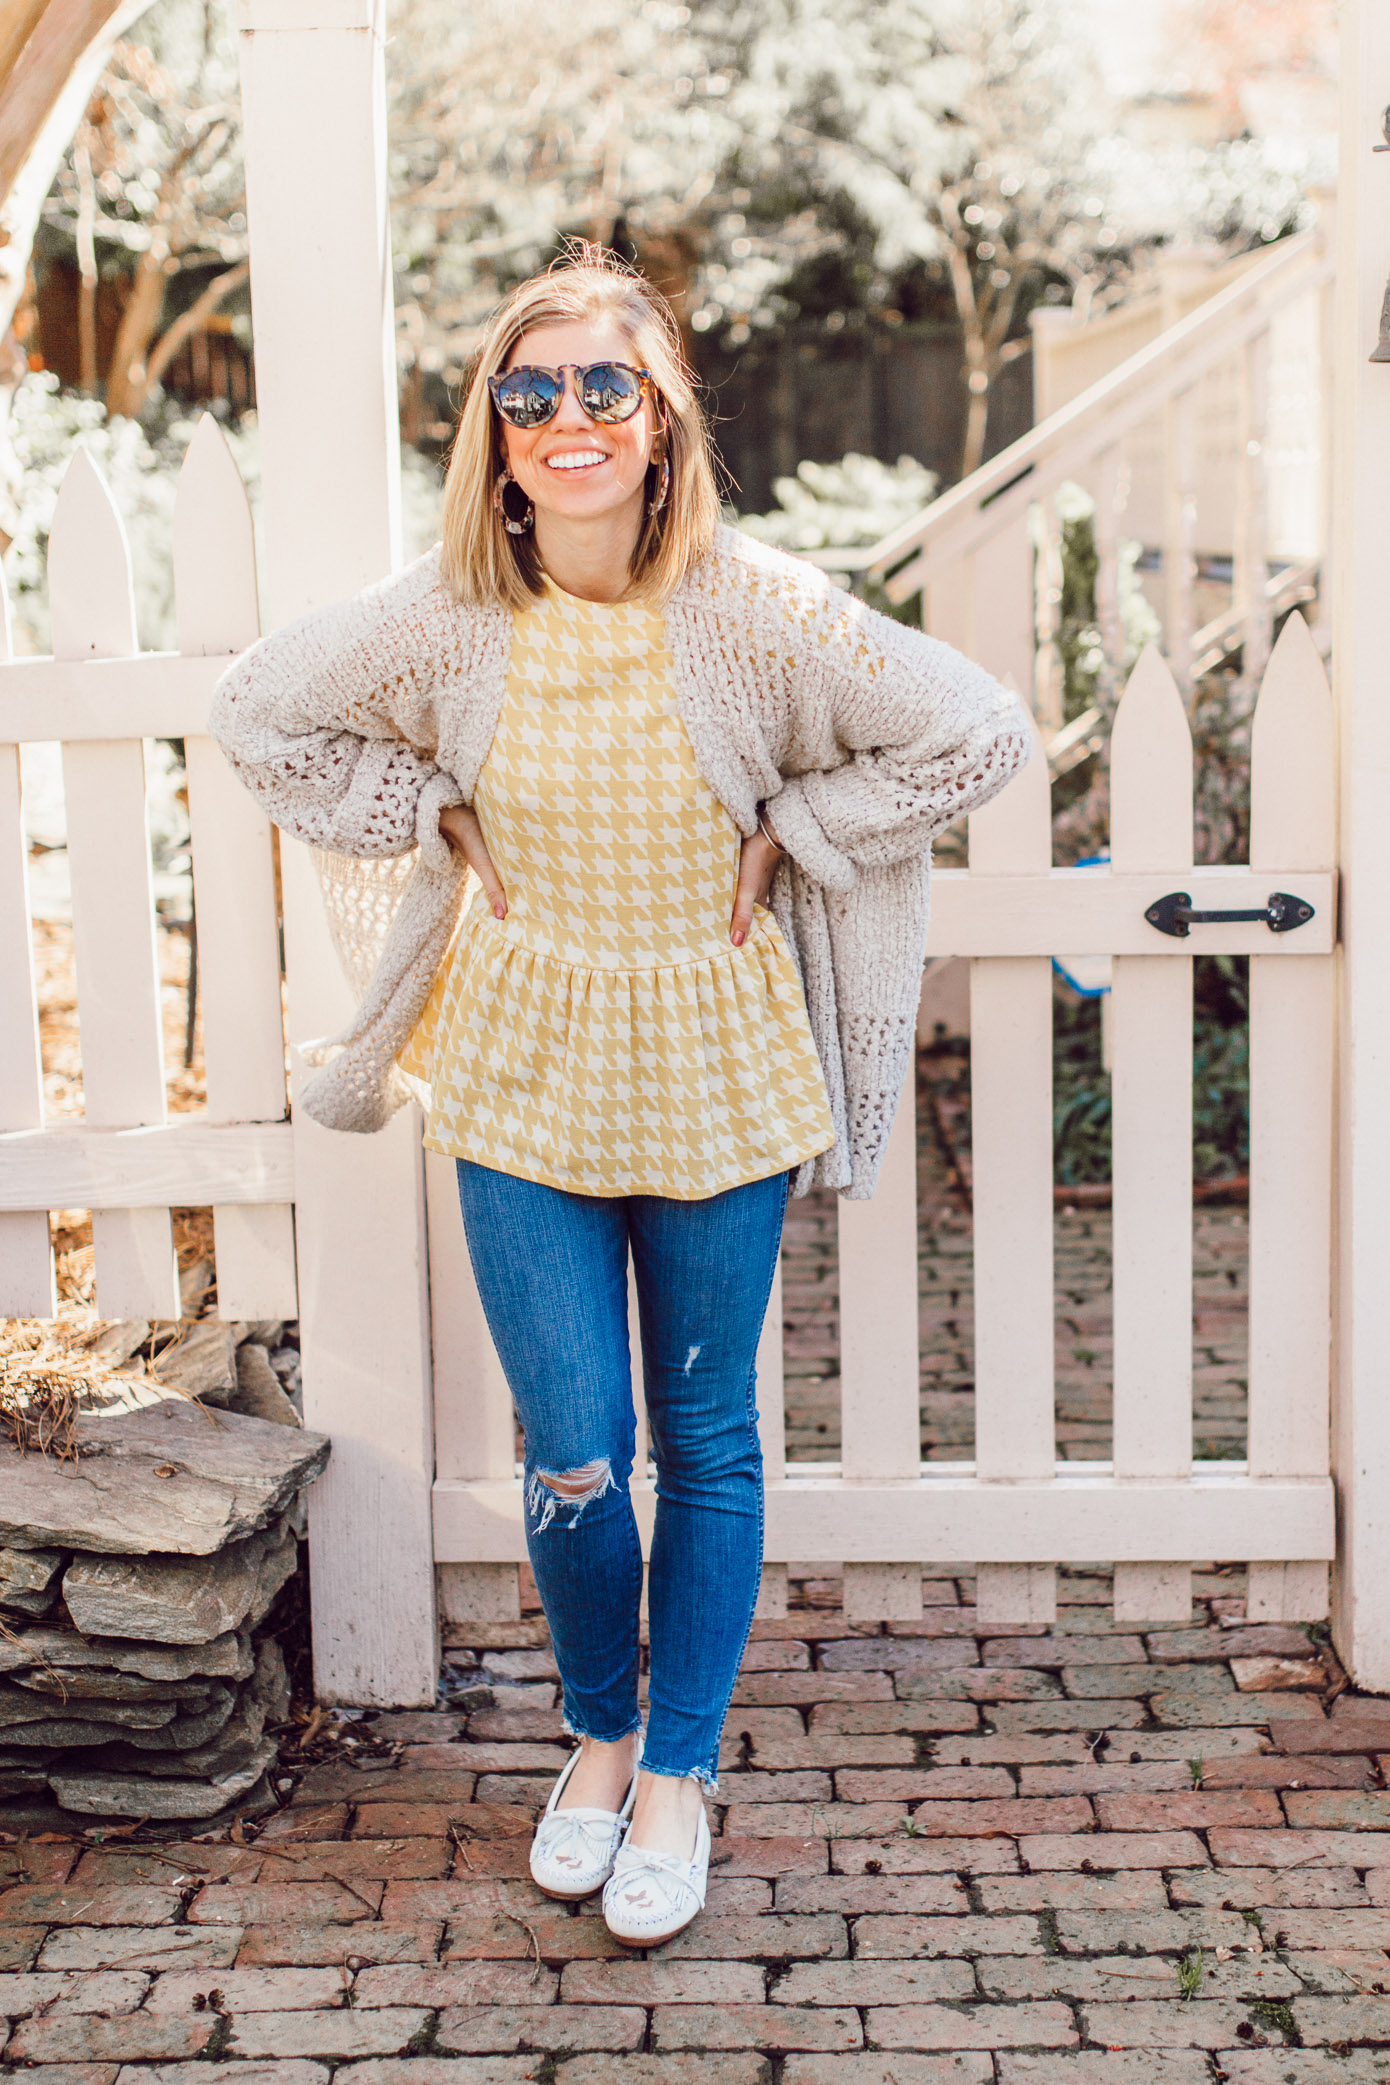 Spring 2019 Trend: Yellow | Yellow Jacquard Top, Crochet Sweater, High-rise Skinny Jeans, White Moccasins styled on Louella Reese